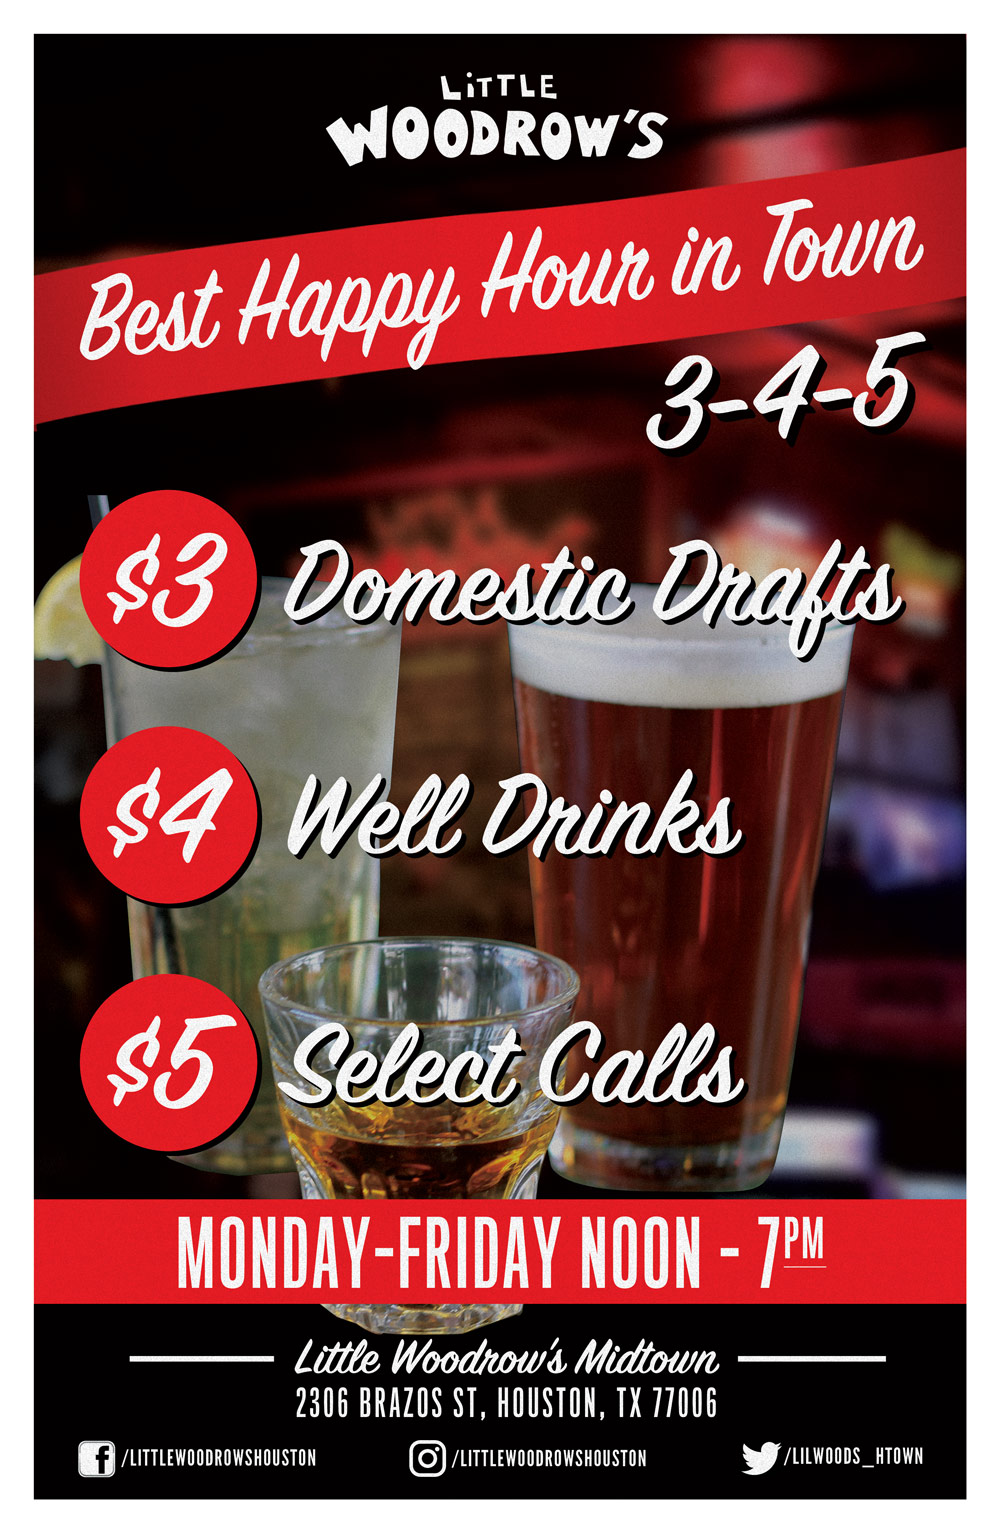 Happy Hour Places Near Me Midtown Houston Sports Bar Little Woodrow S Sports Bar